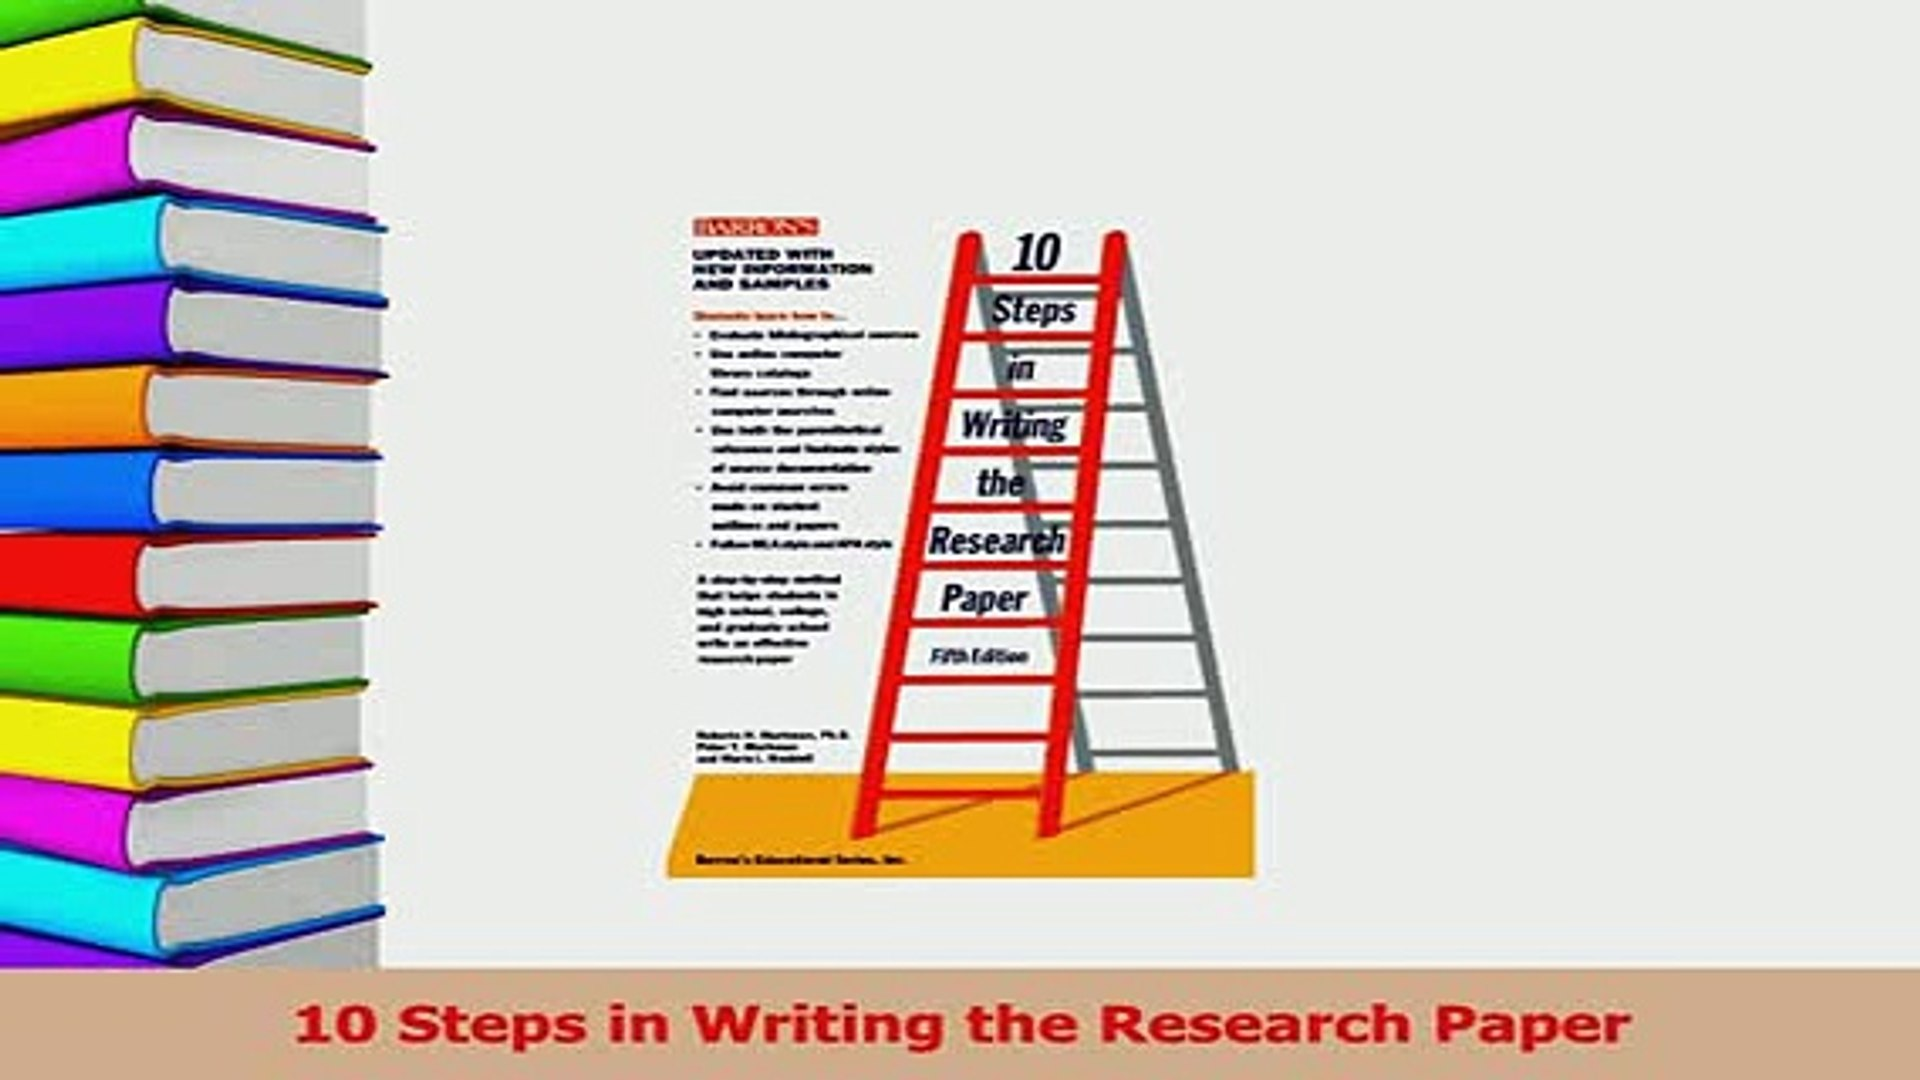 018 Steps For Writing Research Paper X1080 Unforgettable 10 A In The Markman Pdf To Write Basic Full